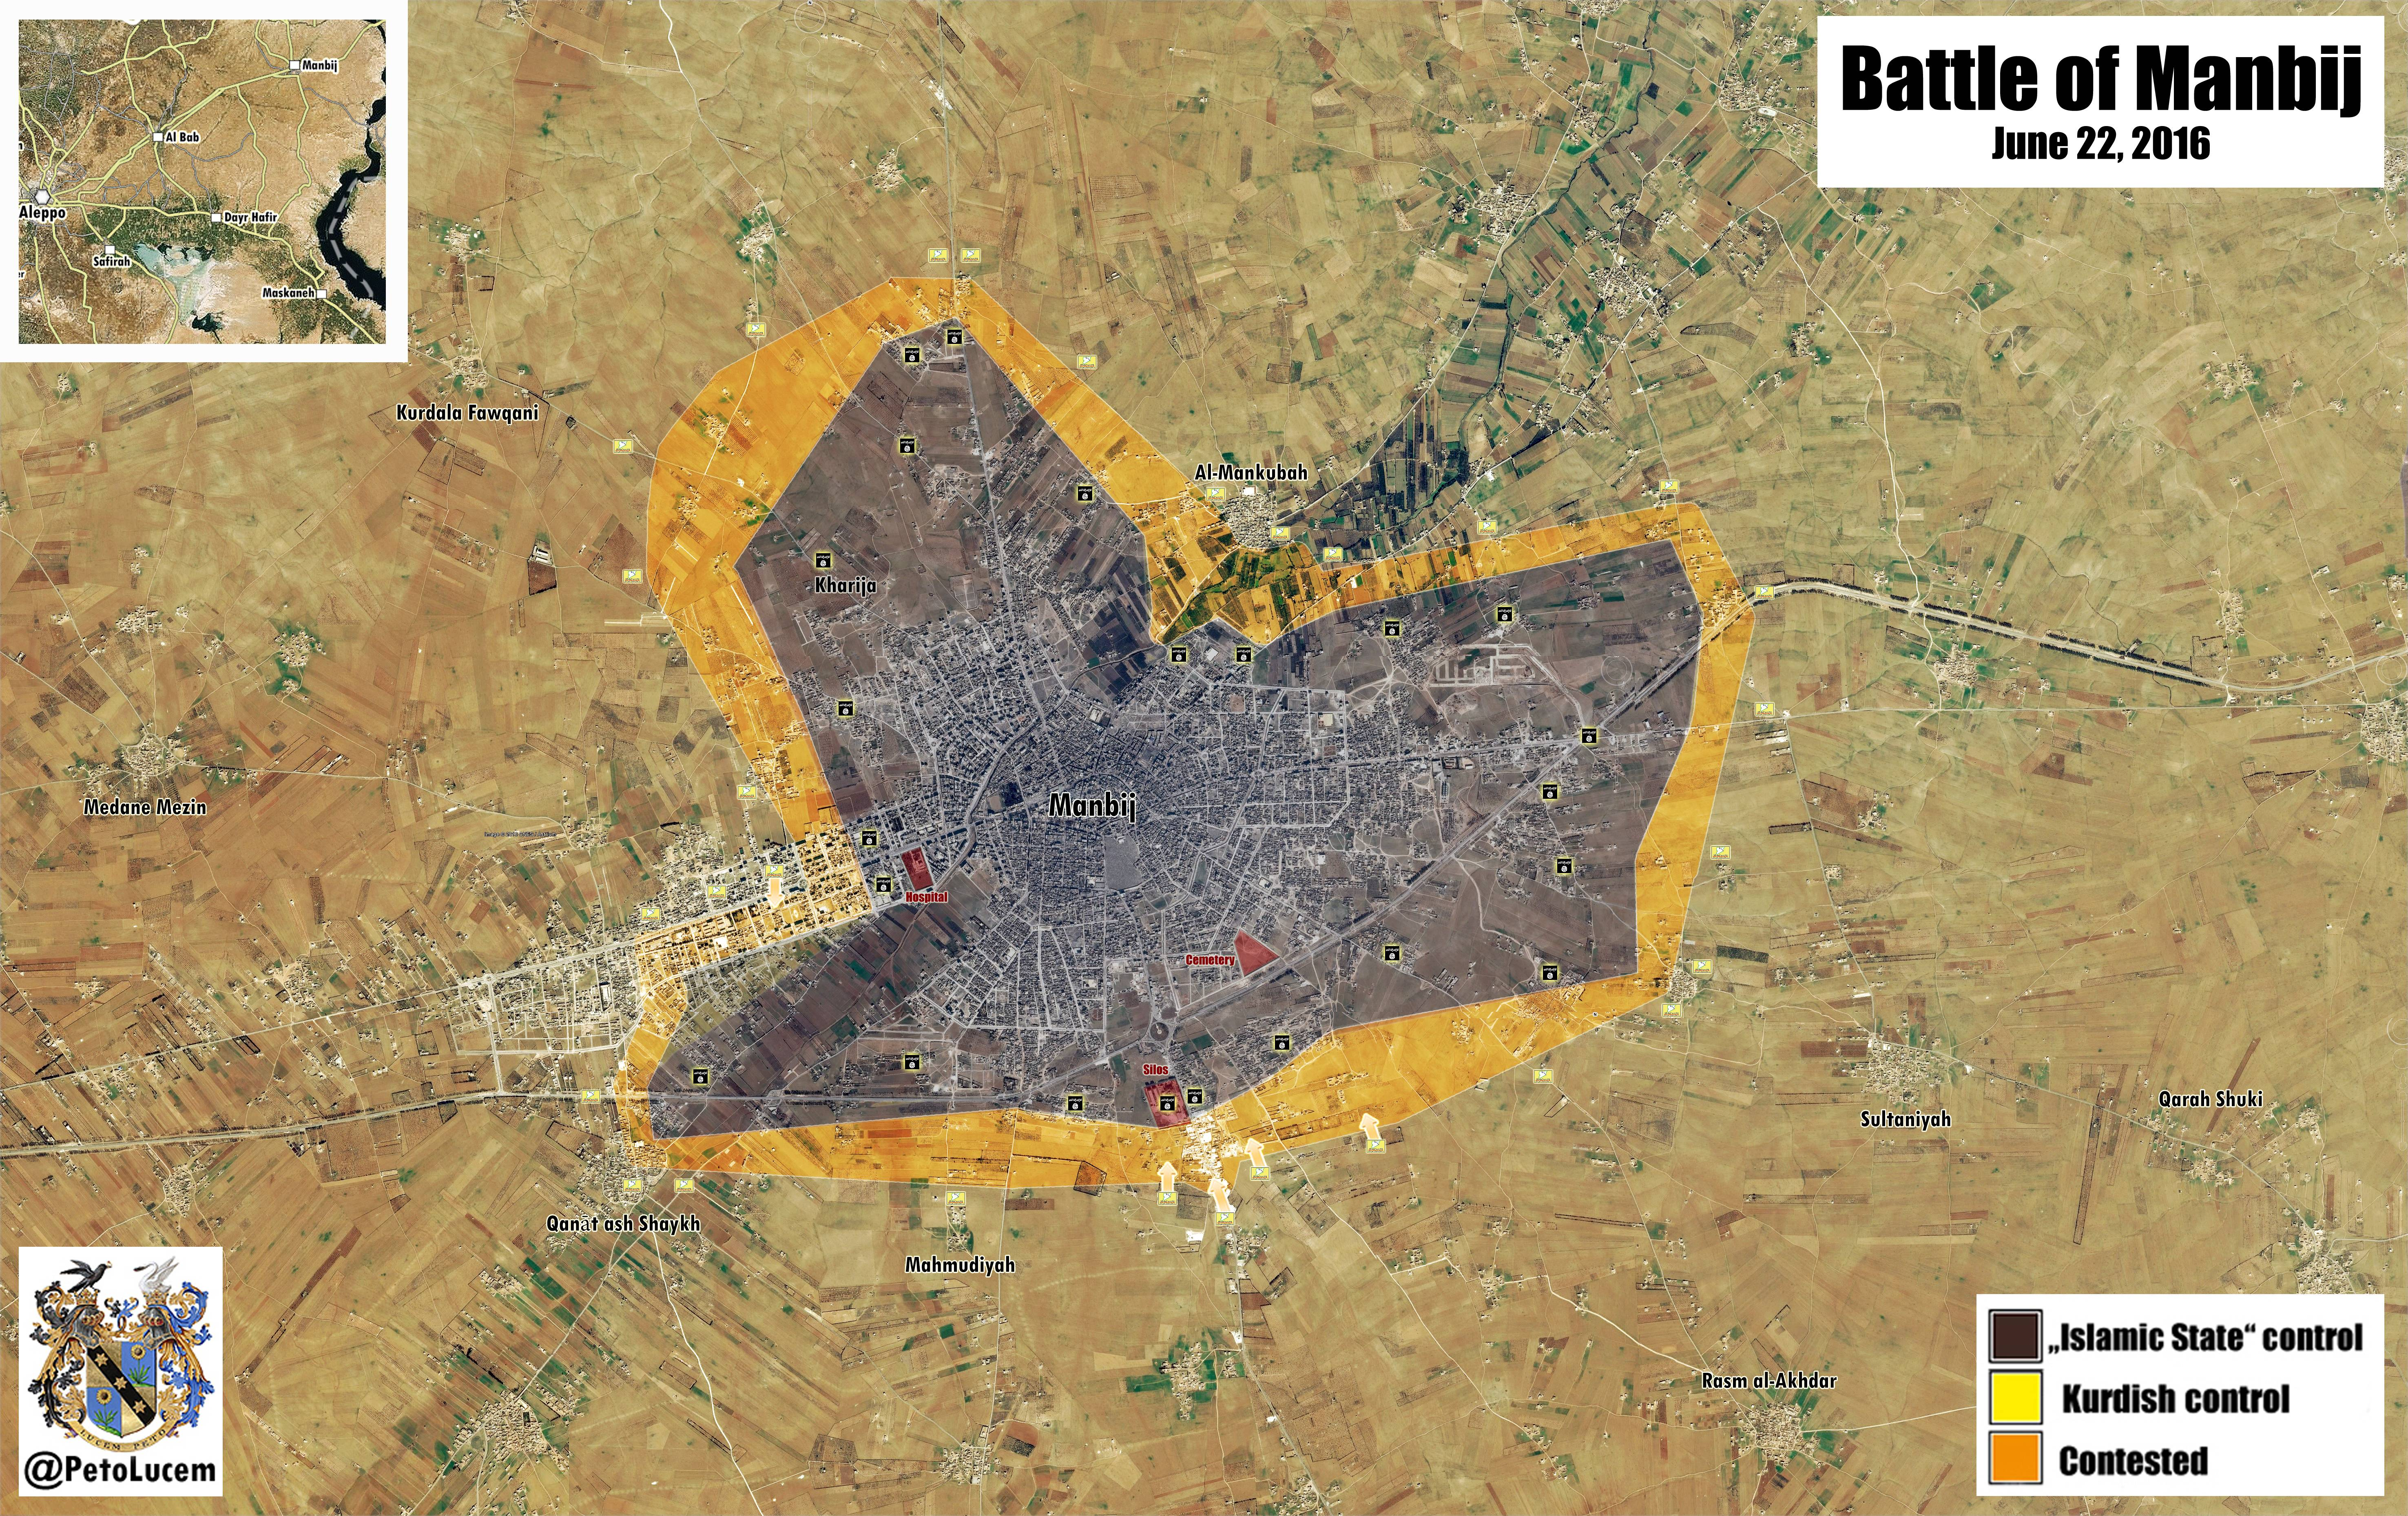 SDF Increases Efforts in Battle for Manbij - Photo, Video, Maps